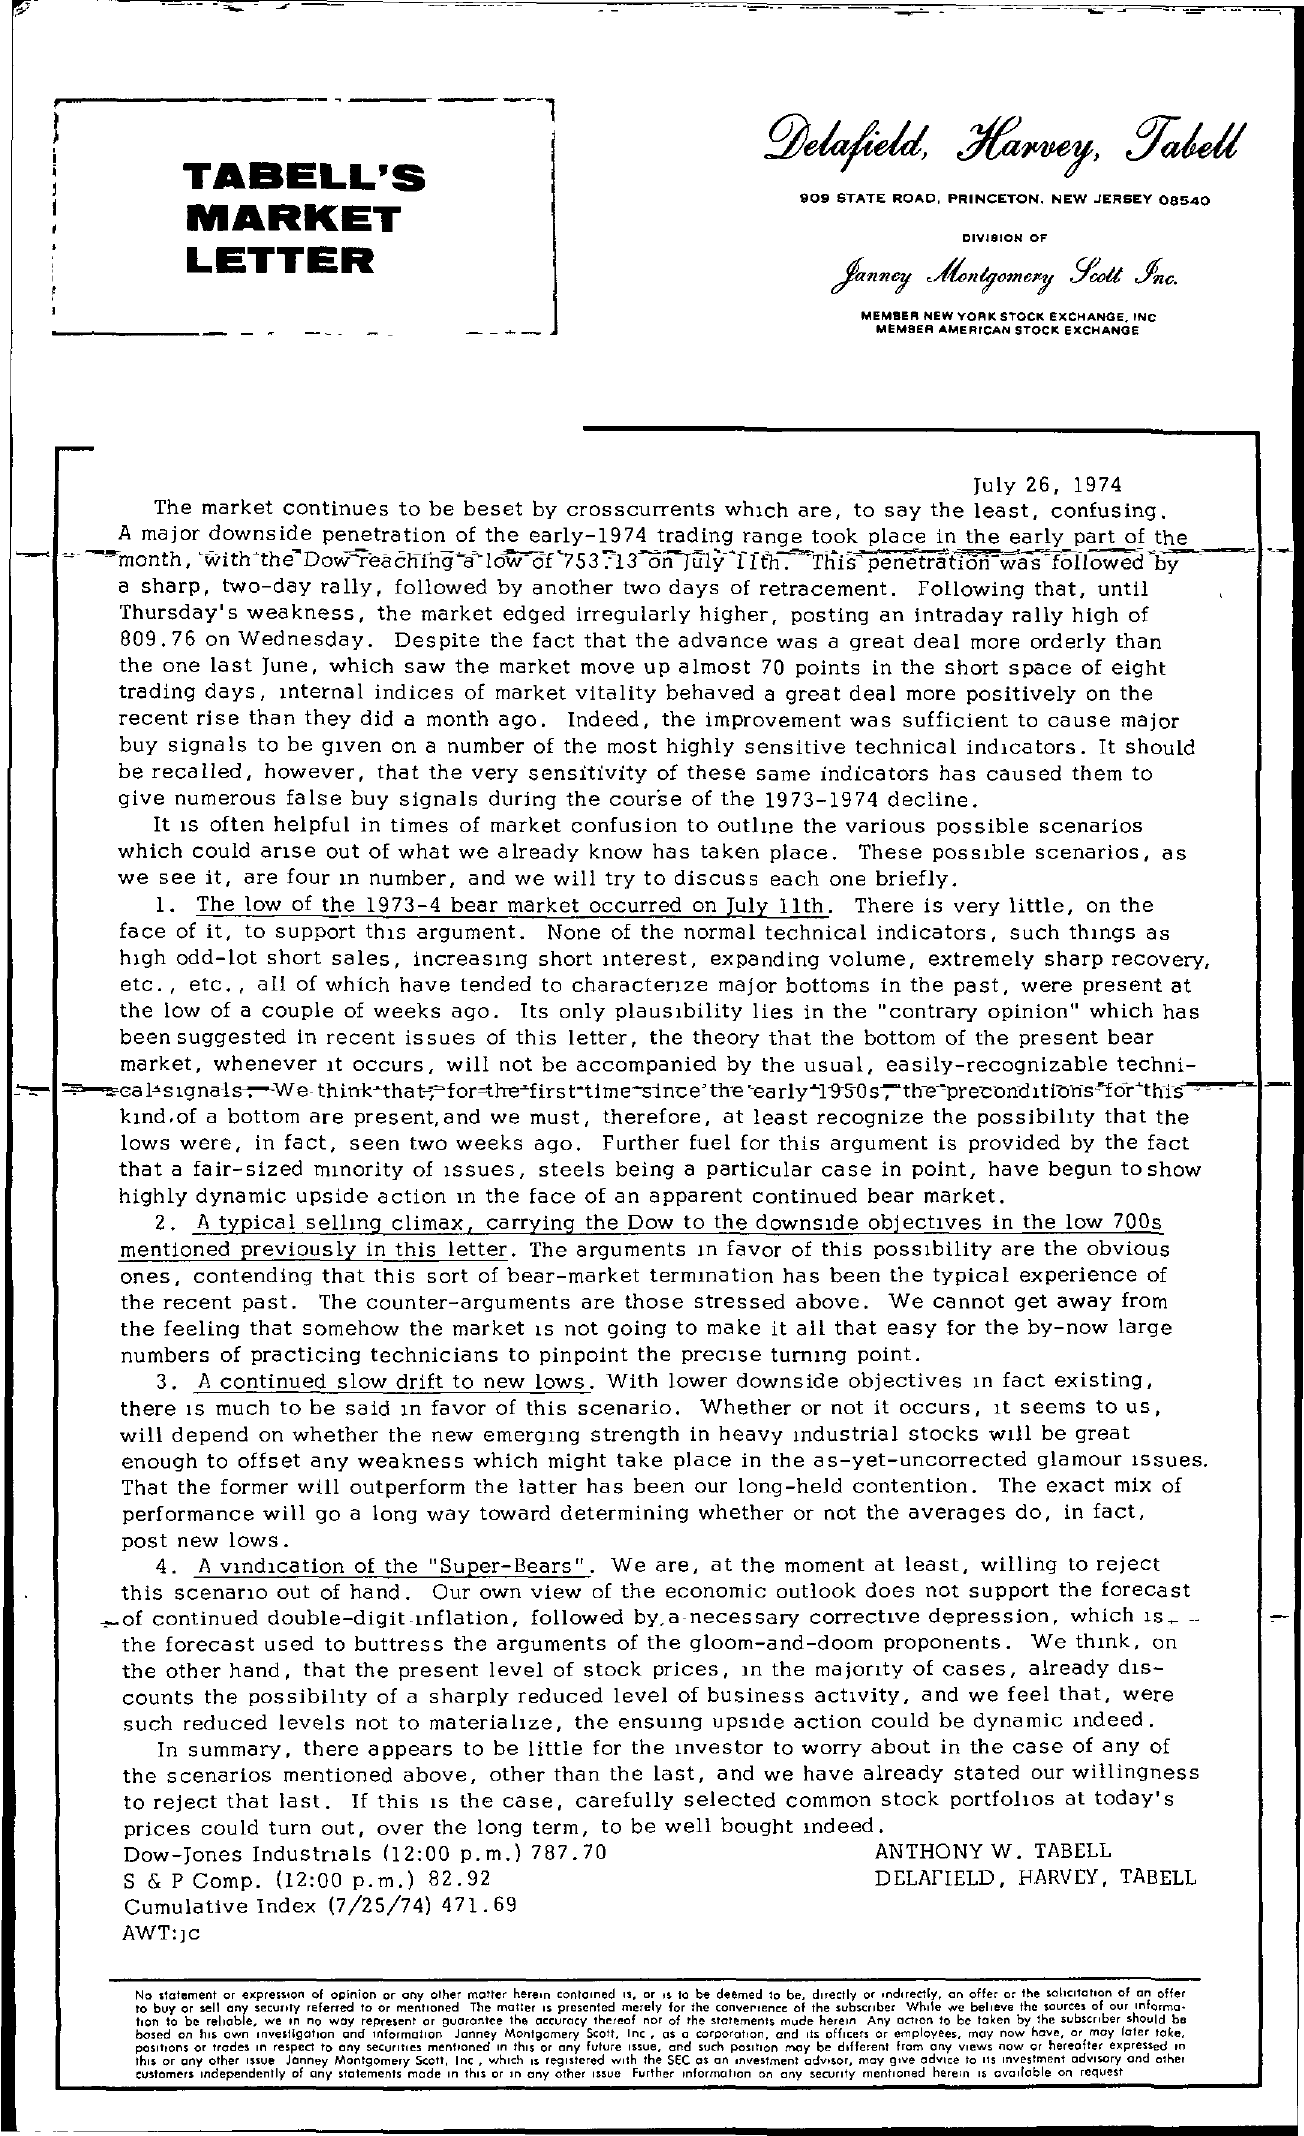 Tabell's Market Letter - July 26, 1974